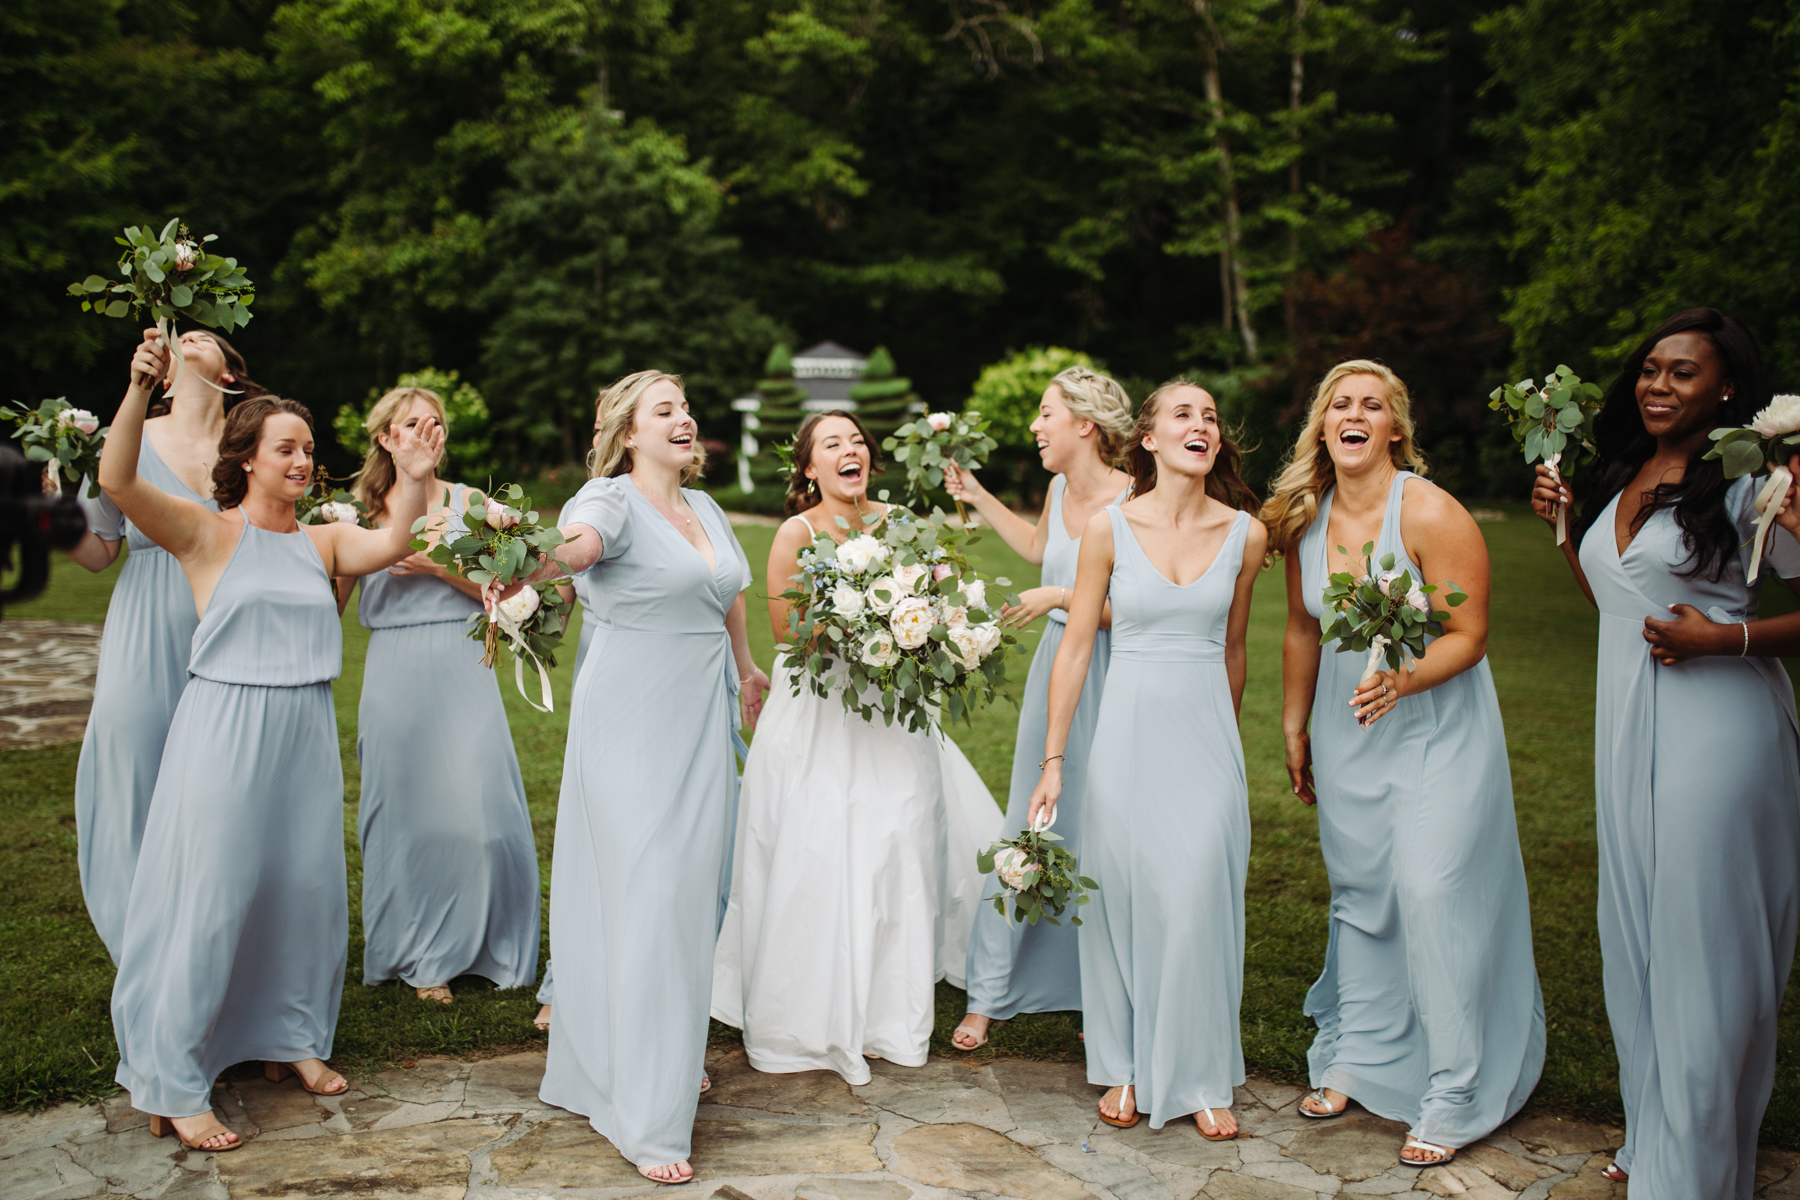 Bride and bridesmaid photos at a Sunny summer wedding at Dara's Garden in Knoxville, Tennessee